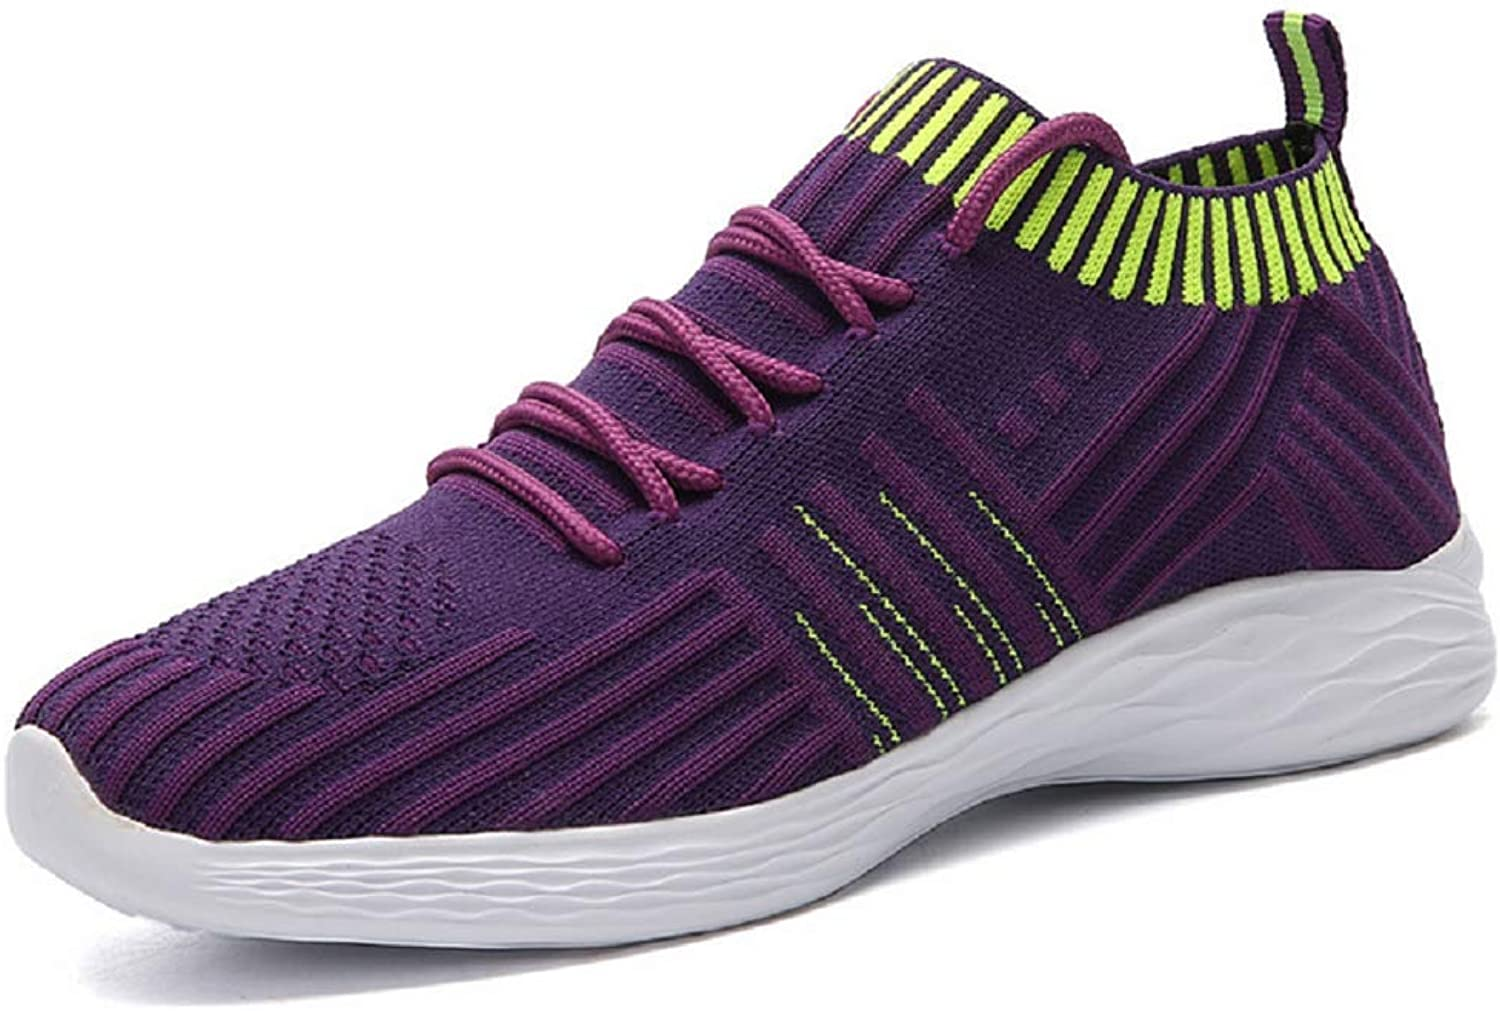 JiYe Running shoes Womens Fashion Casual Soft Flyknit wrap up Sneakers